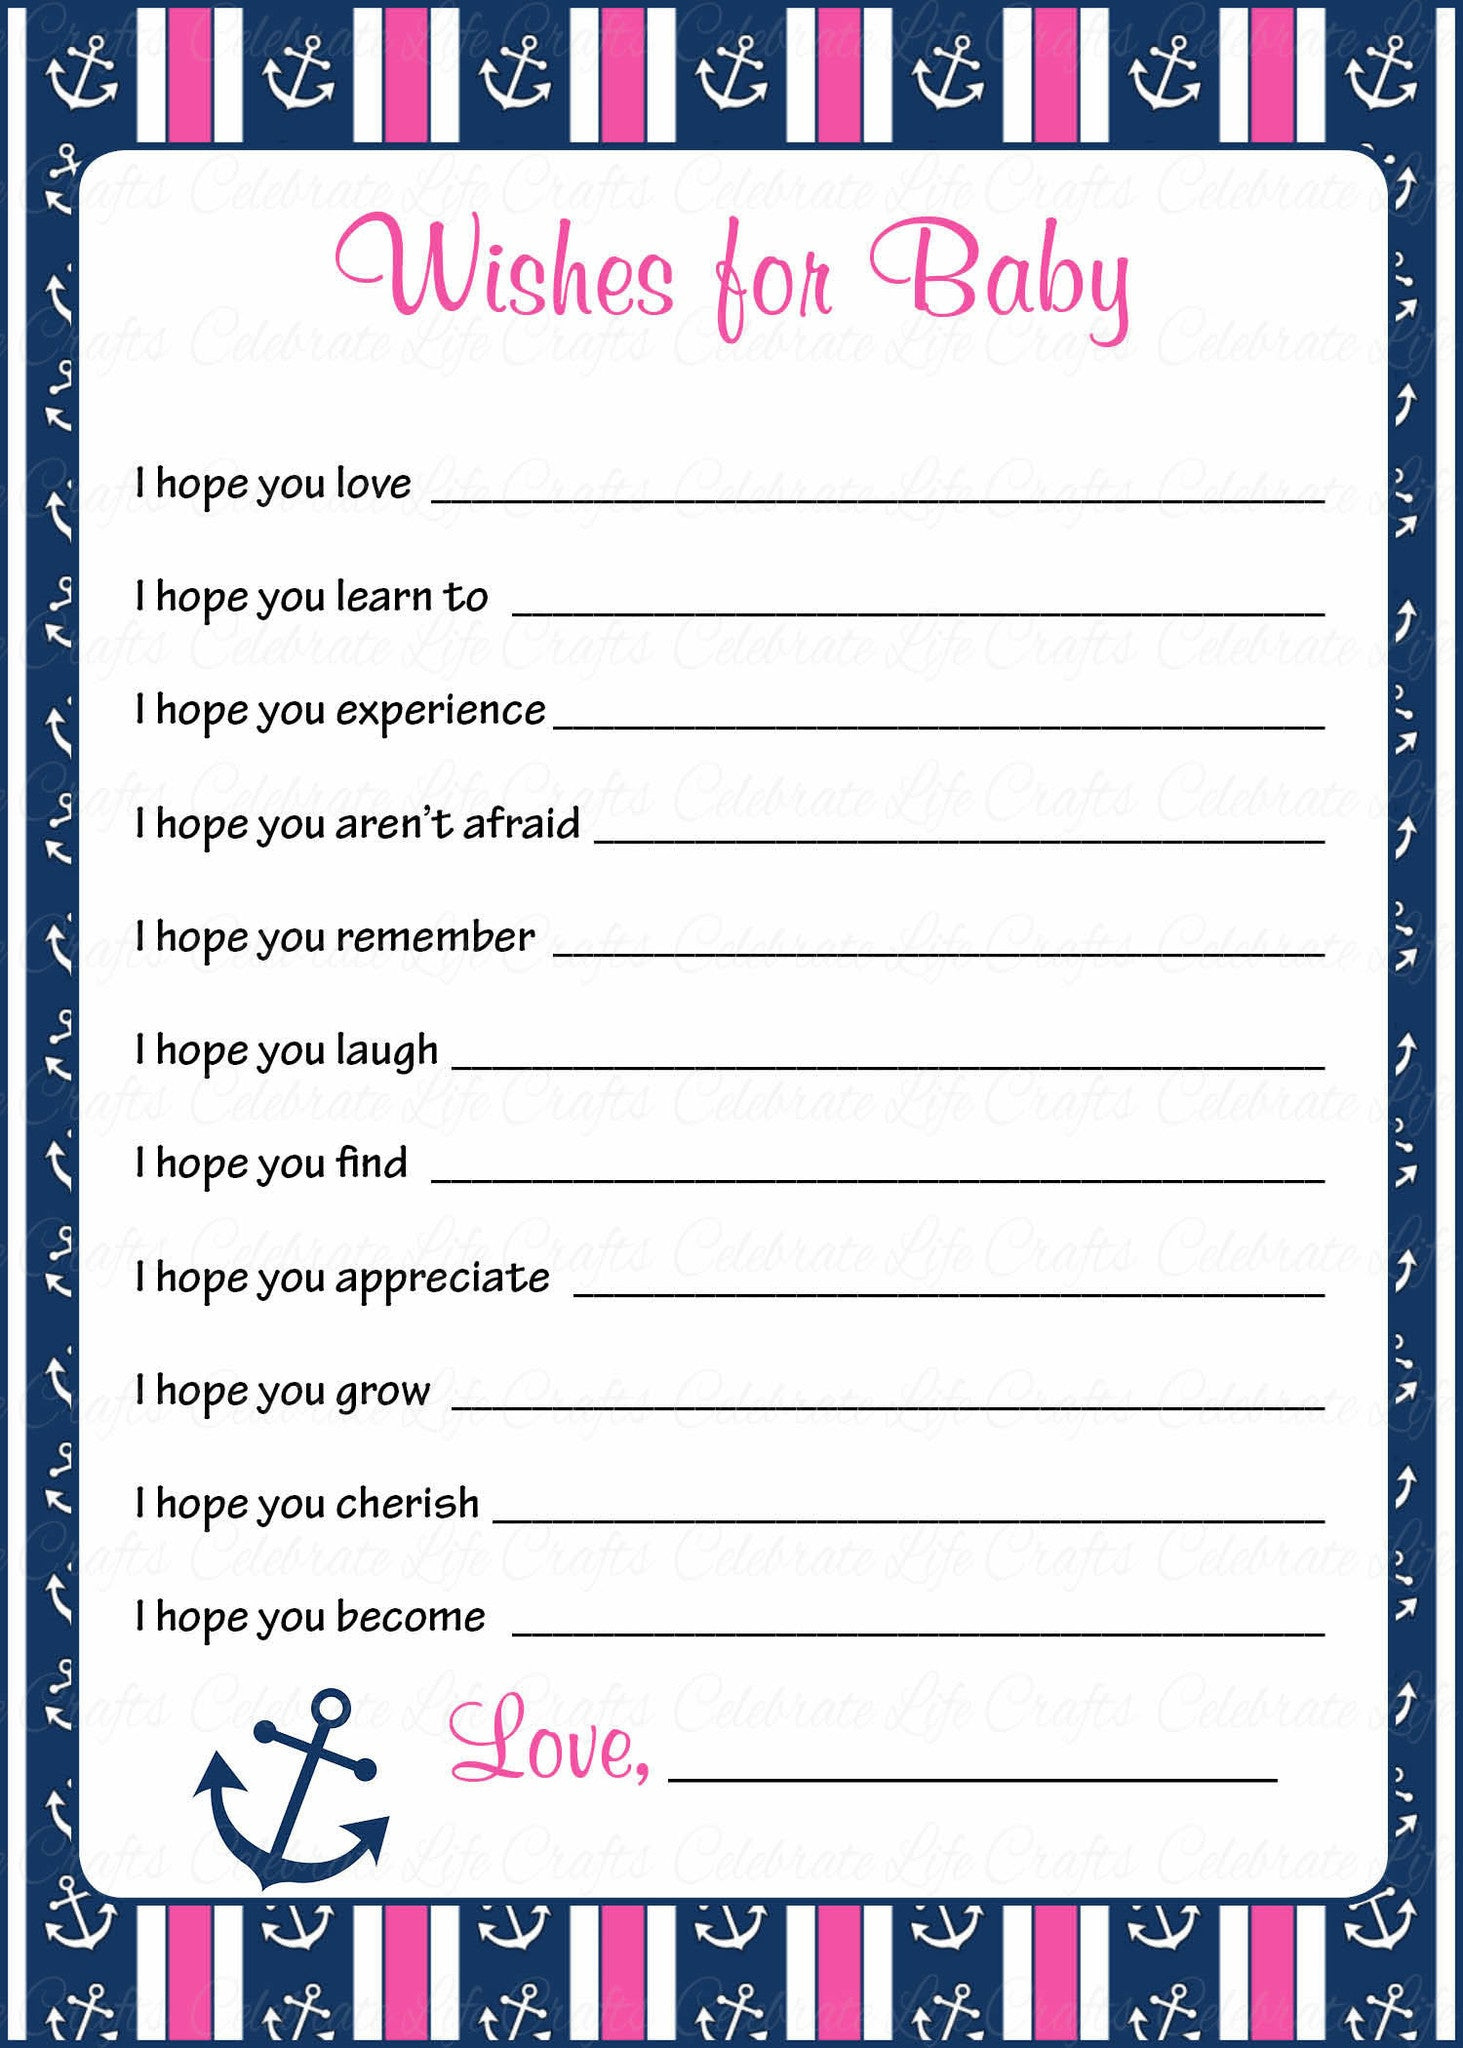 Wishes for baby shower activity nautical baby shower theme for wishes for baby cards printable download navy pink baby shower activity b15004 kristyandbryce Image collections